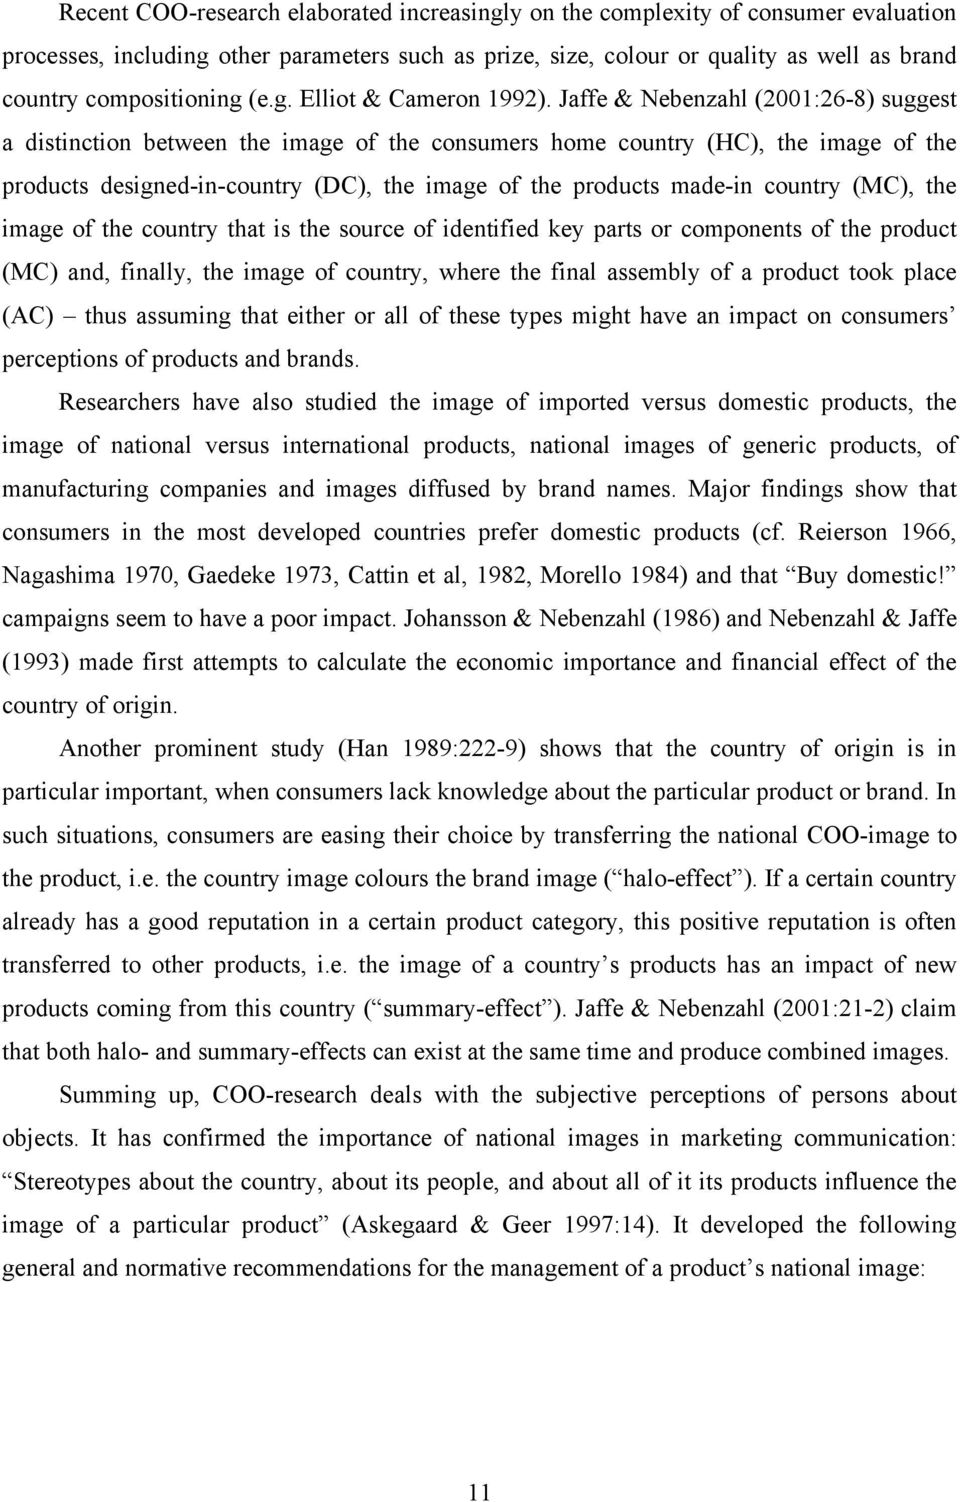 Jaffe & Nebenzahl (2001:26-8) suggest a distinction between the image of the consumers home country (HC), the image of the products designed-in-country (DC), the image of the products made-in country